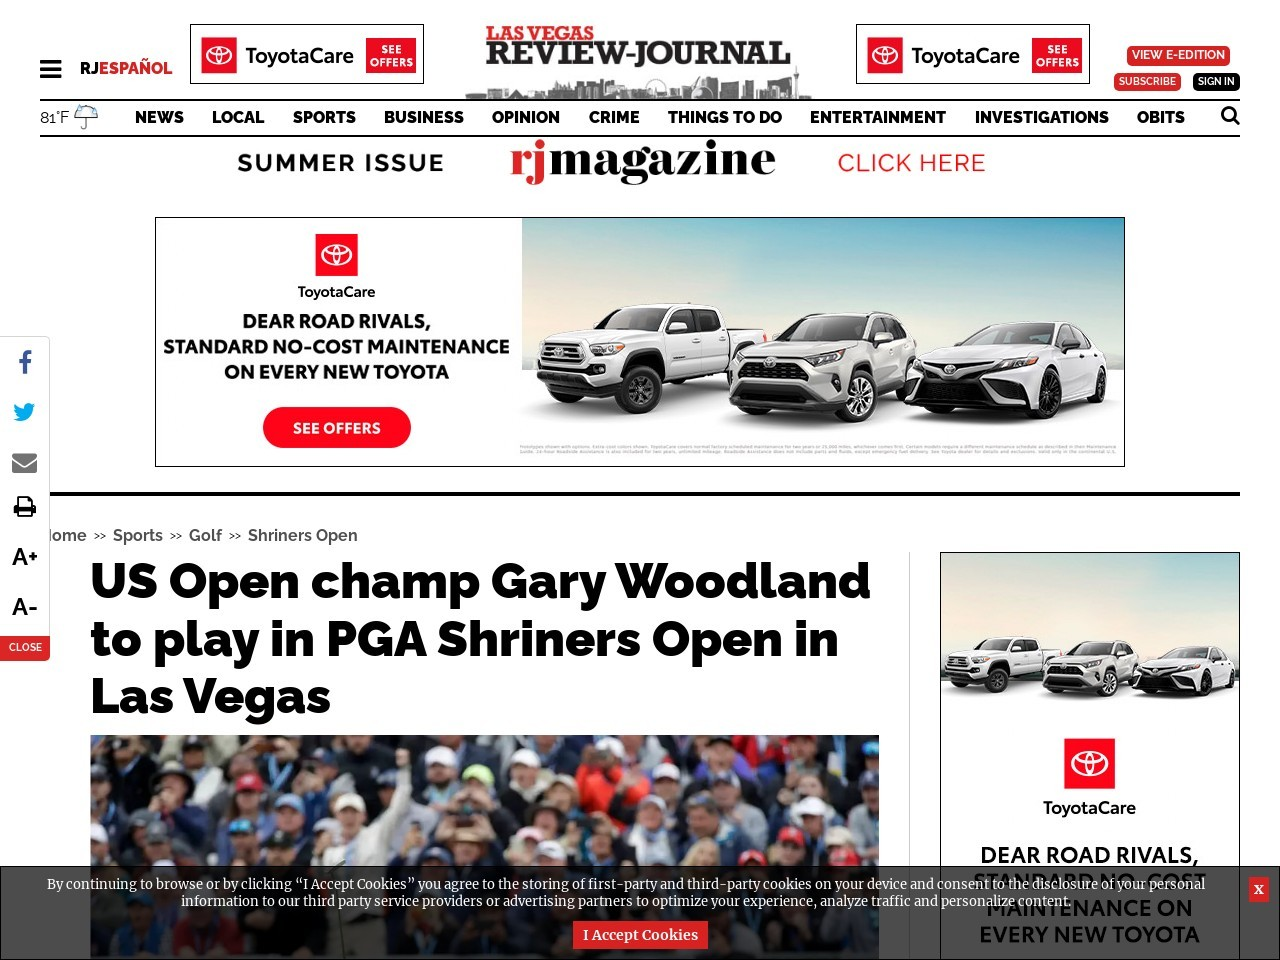 US Open champ Gary Woodland to play in PGA Shriners Open in Las Vegas